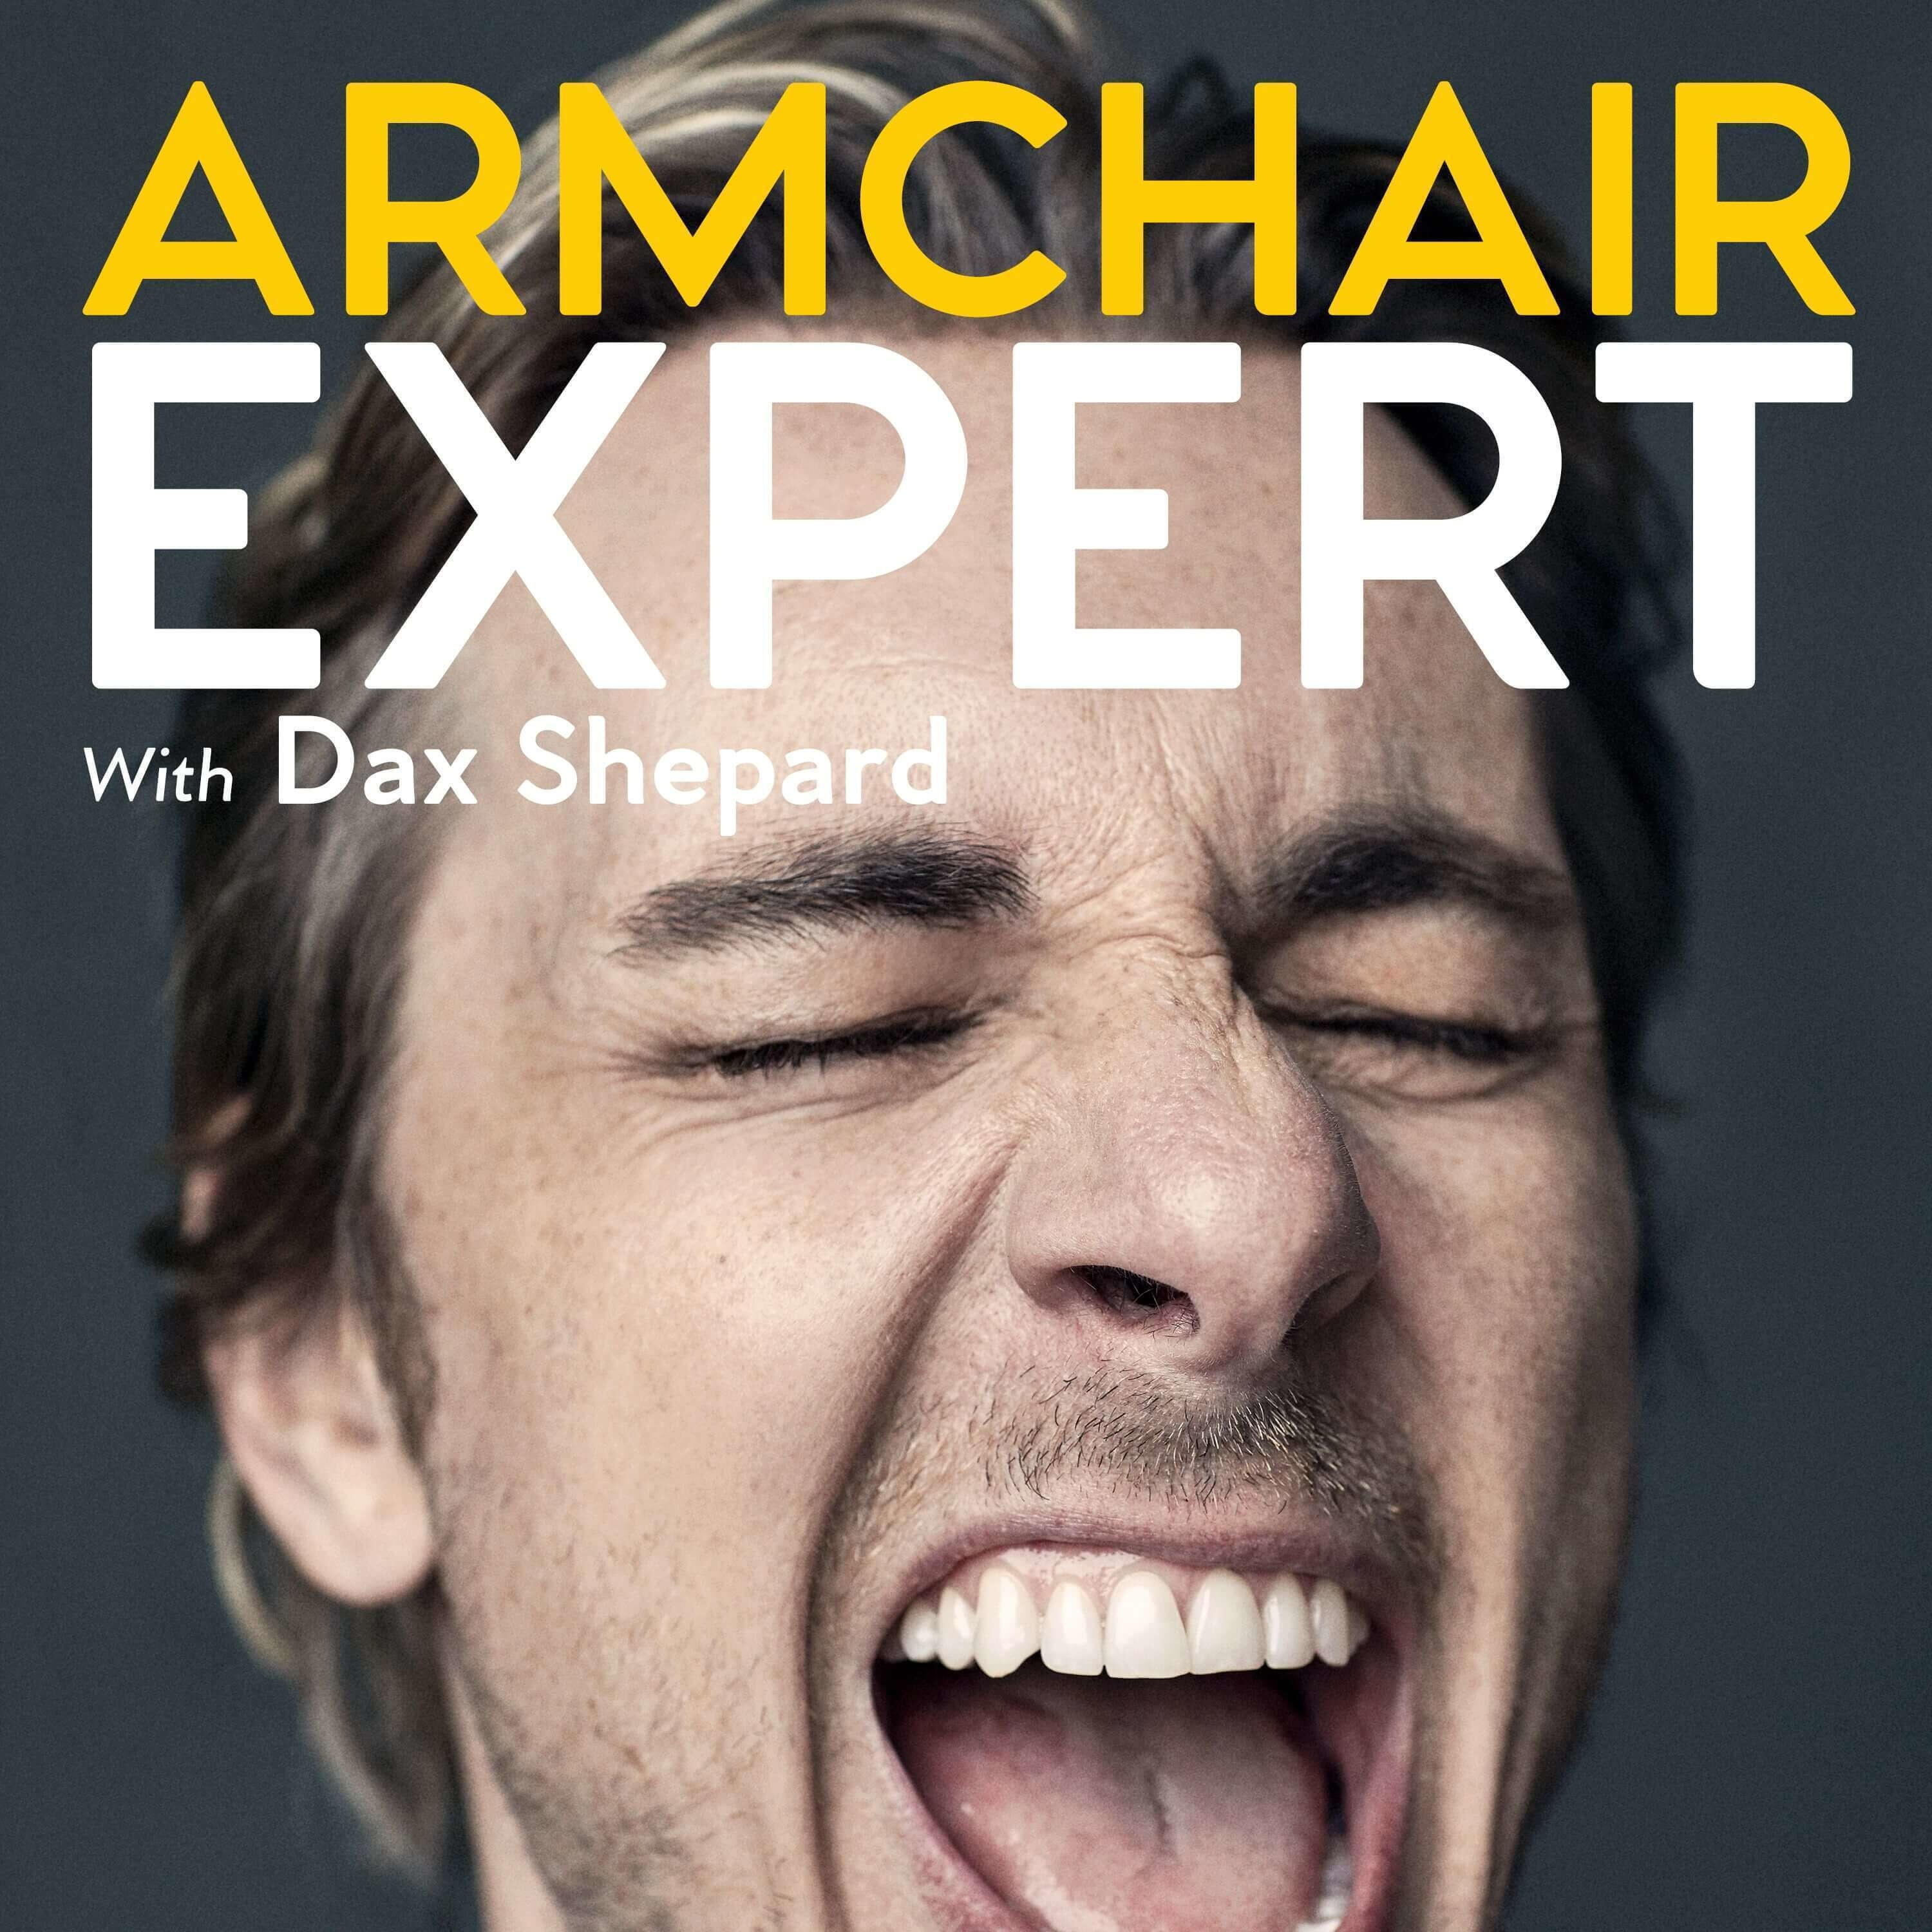 Listen to the Armchair Expert with Dax Shepard Episode - Laurie Santos on iHeartRadio | iHeartRadio